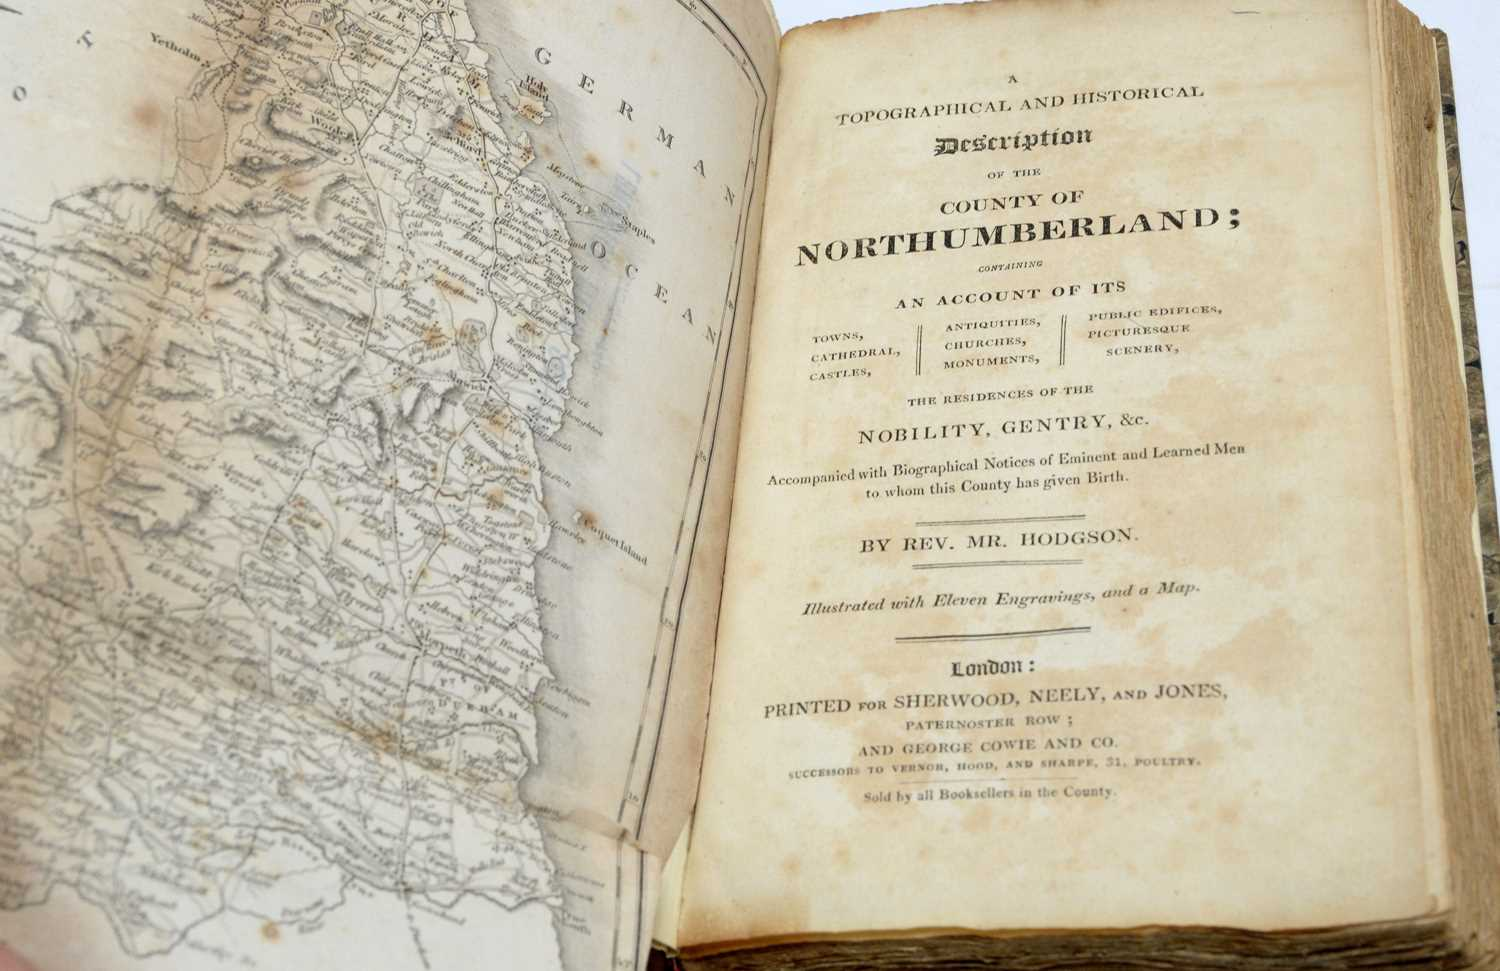 Bates (Cadwallader J.), Popular County Histories: Northumberland, and two other books - Image 4 of 4